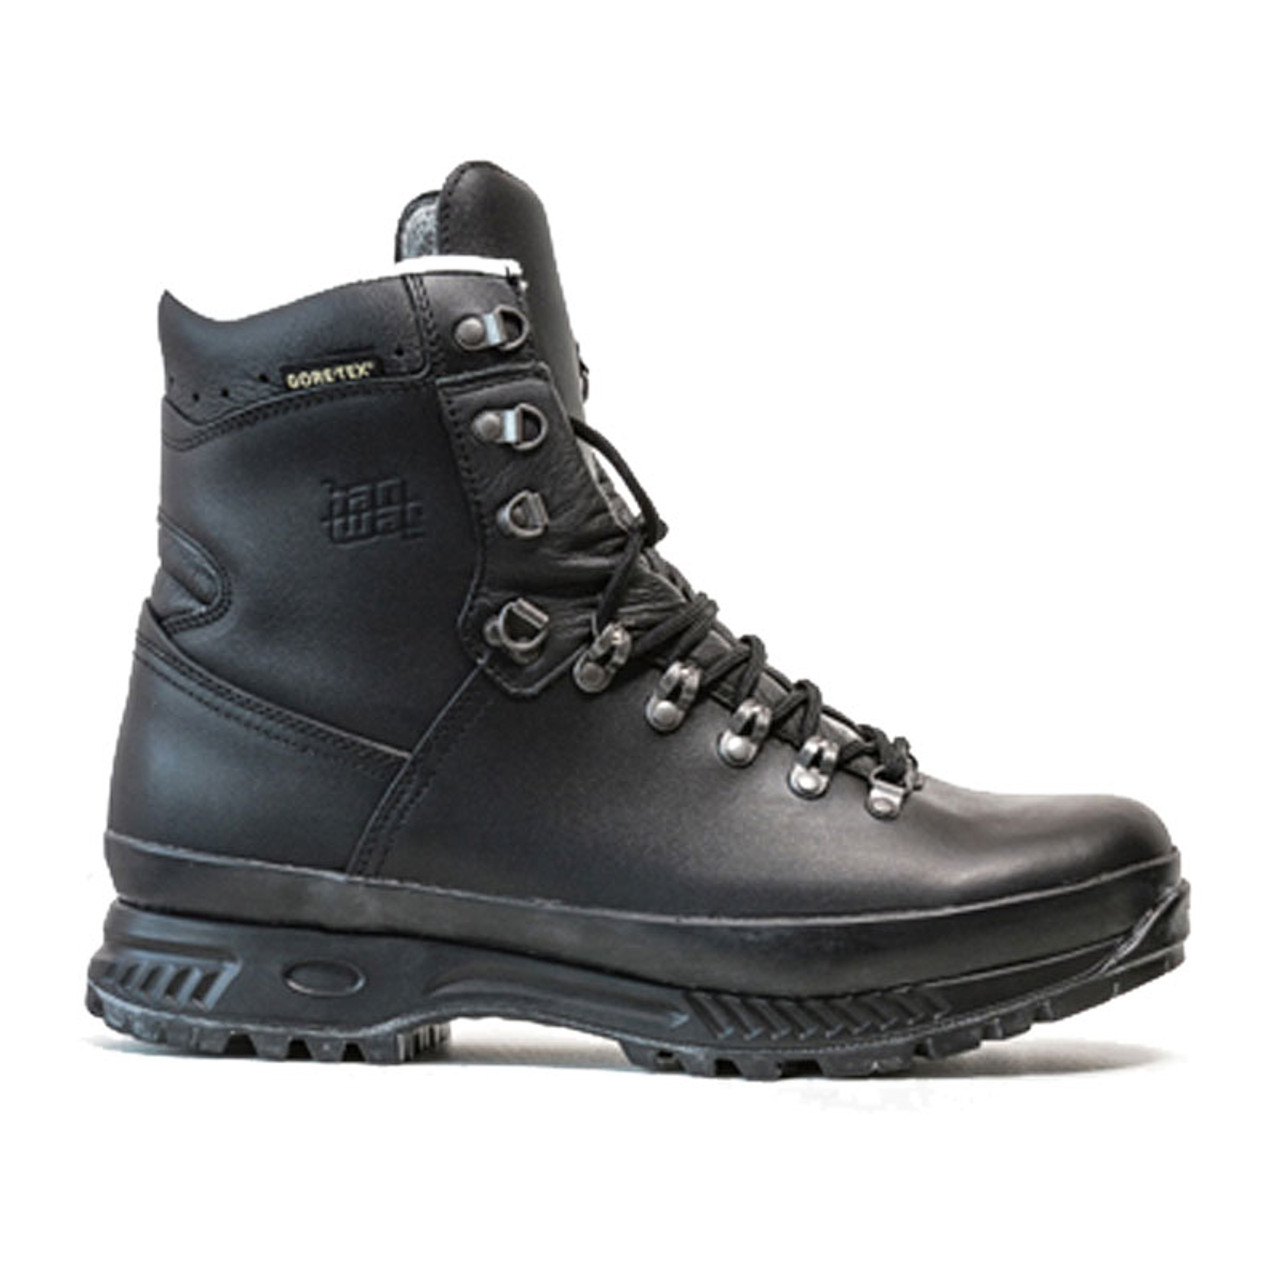 a12945b9fa8 Hanwag Special Force GTX Boots